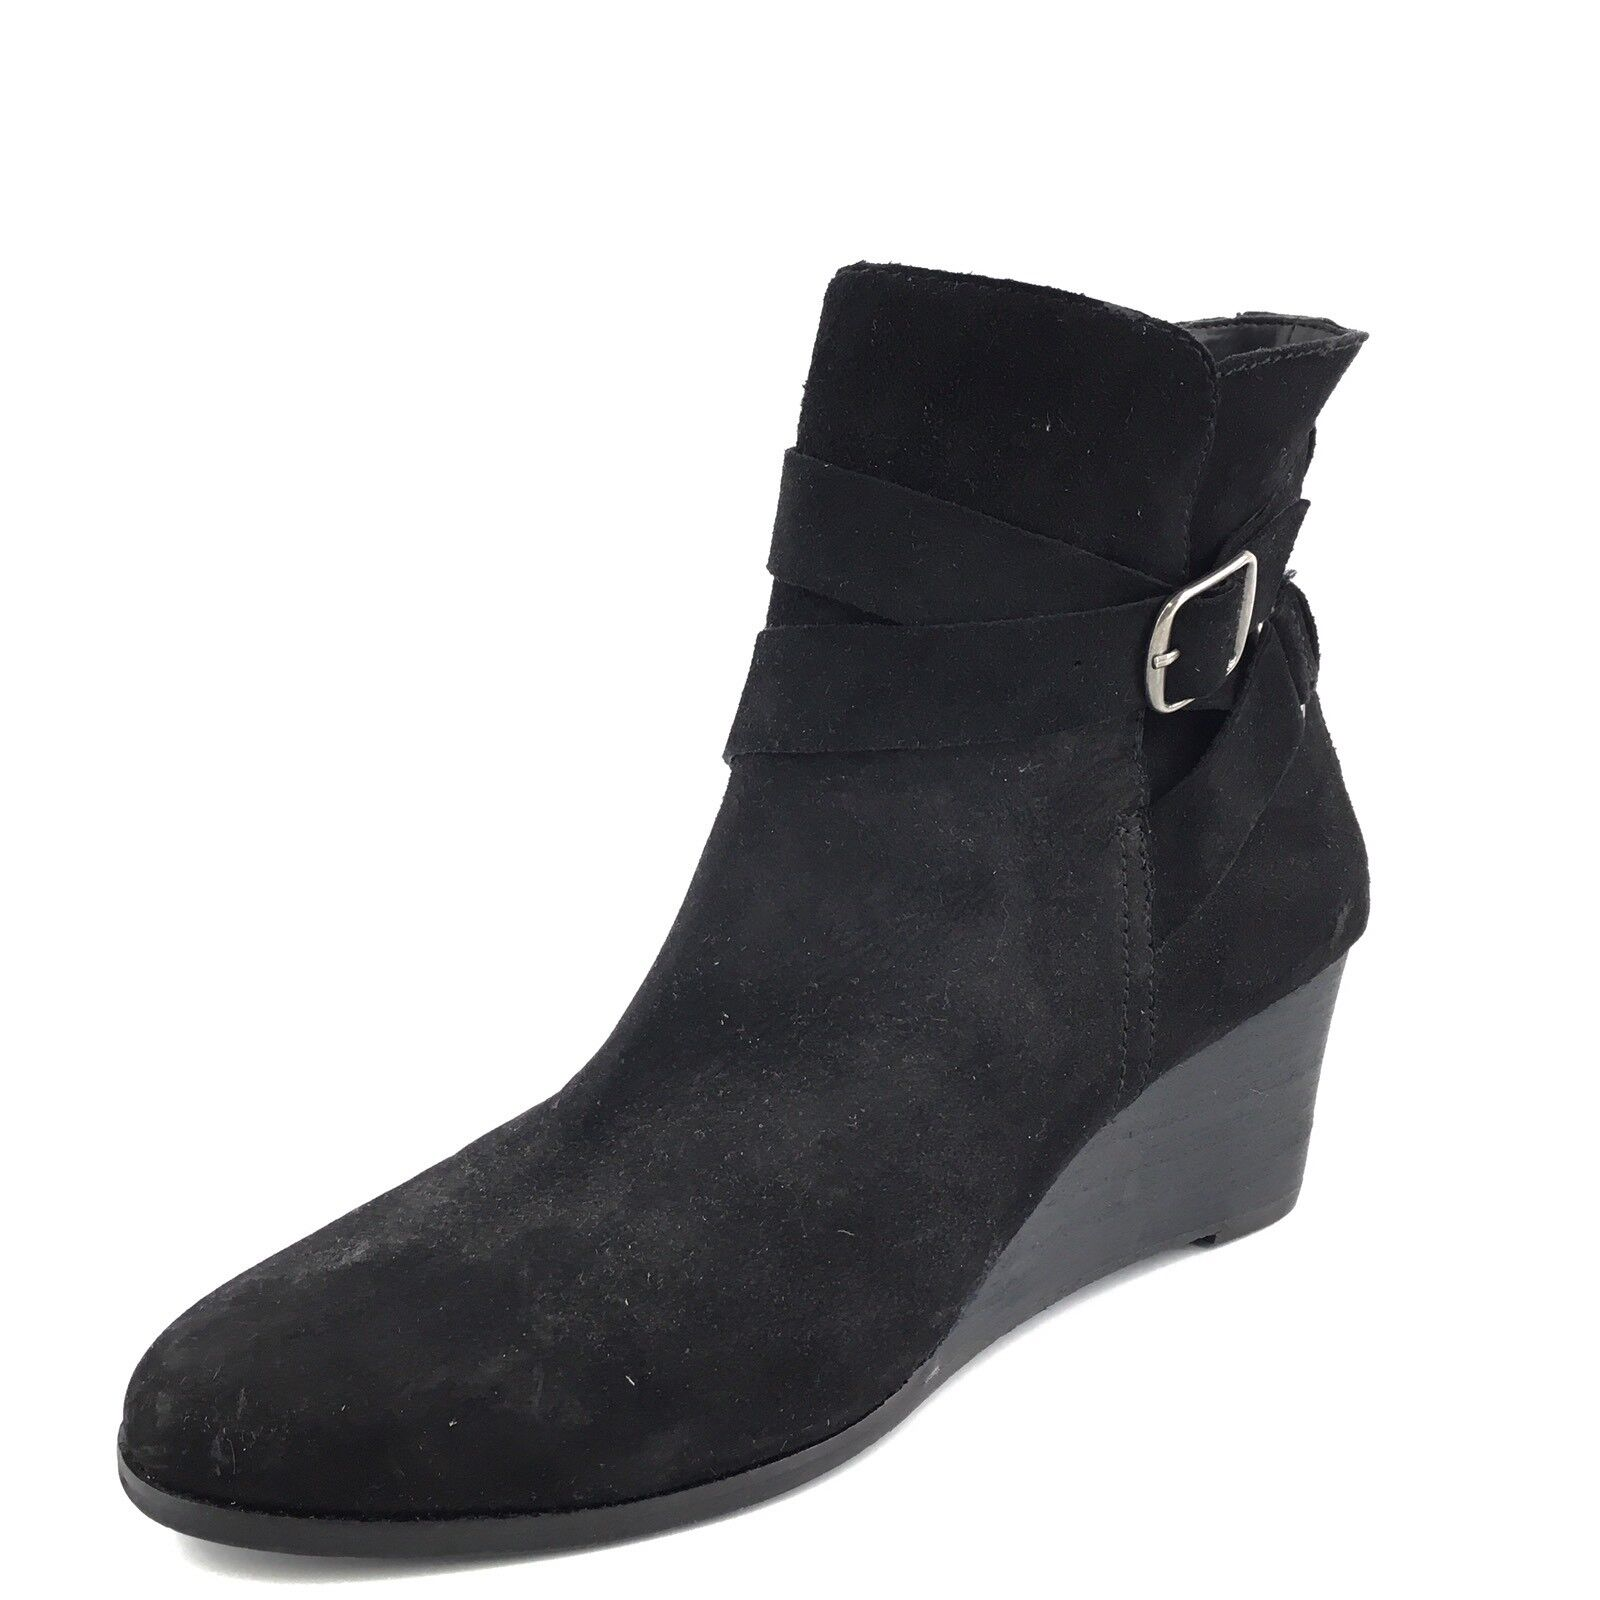 New Lucky Brand Ginnie Women's Black Wedge Suede Wedge Black Ankle Boots Size 8.5 M* 739523